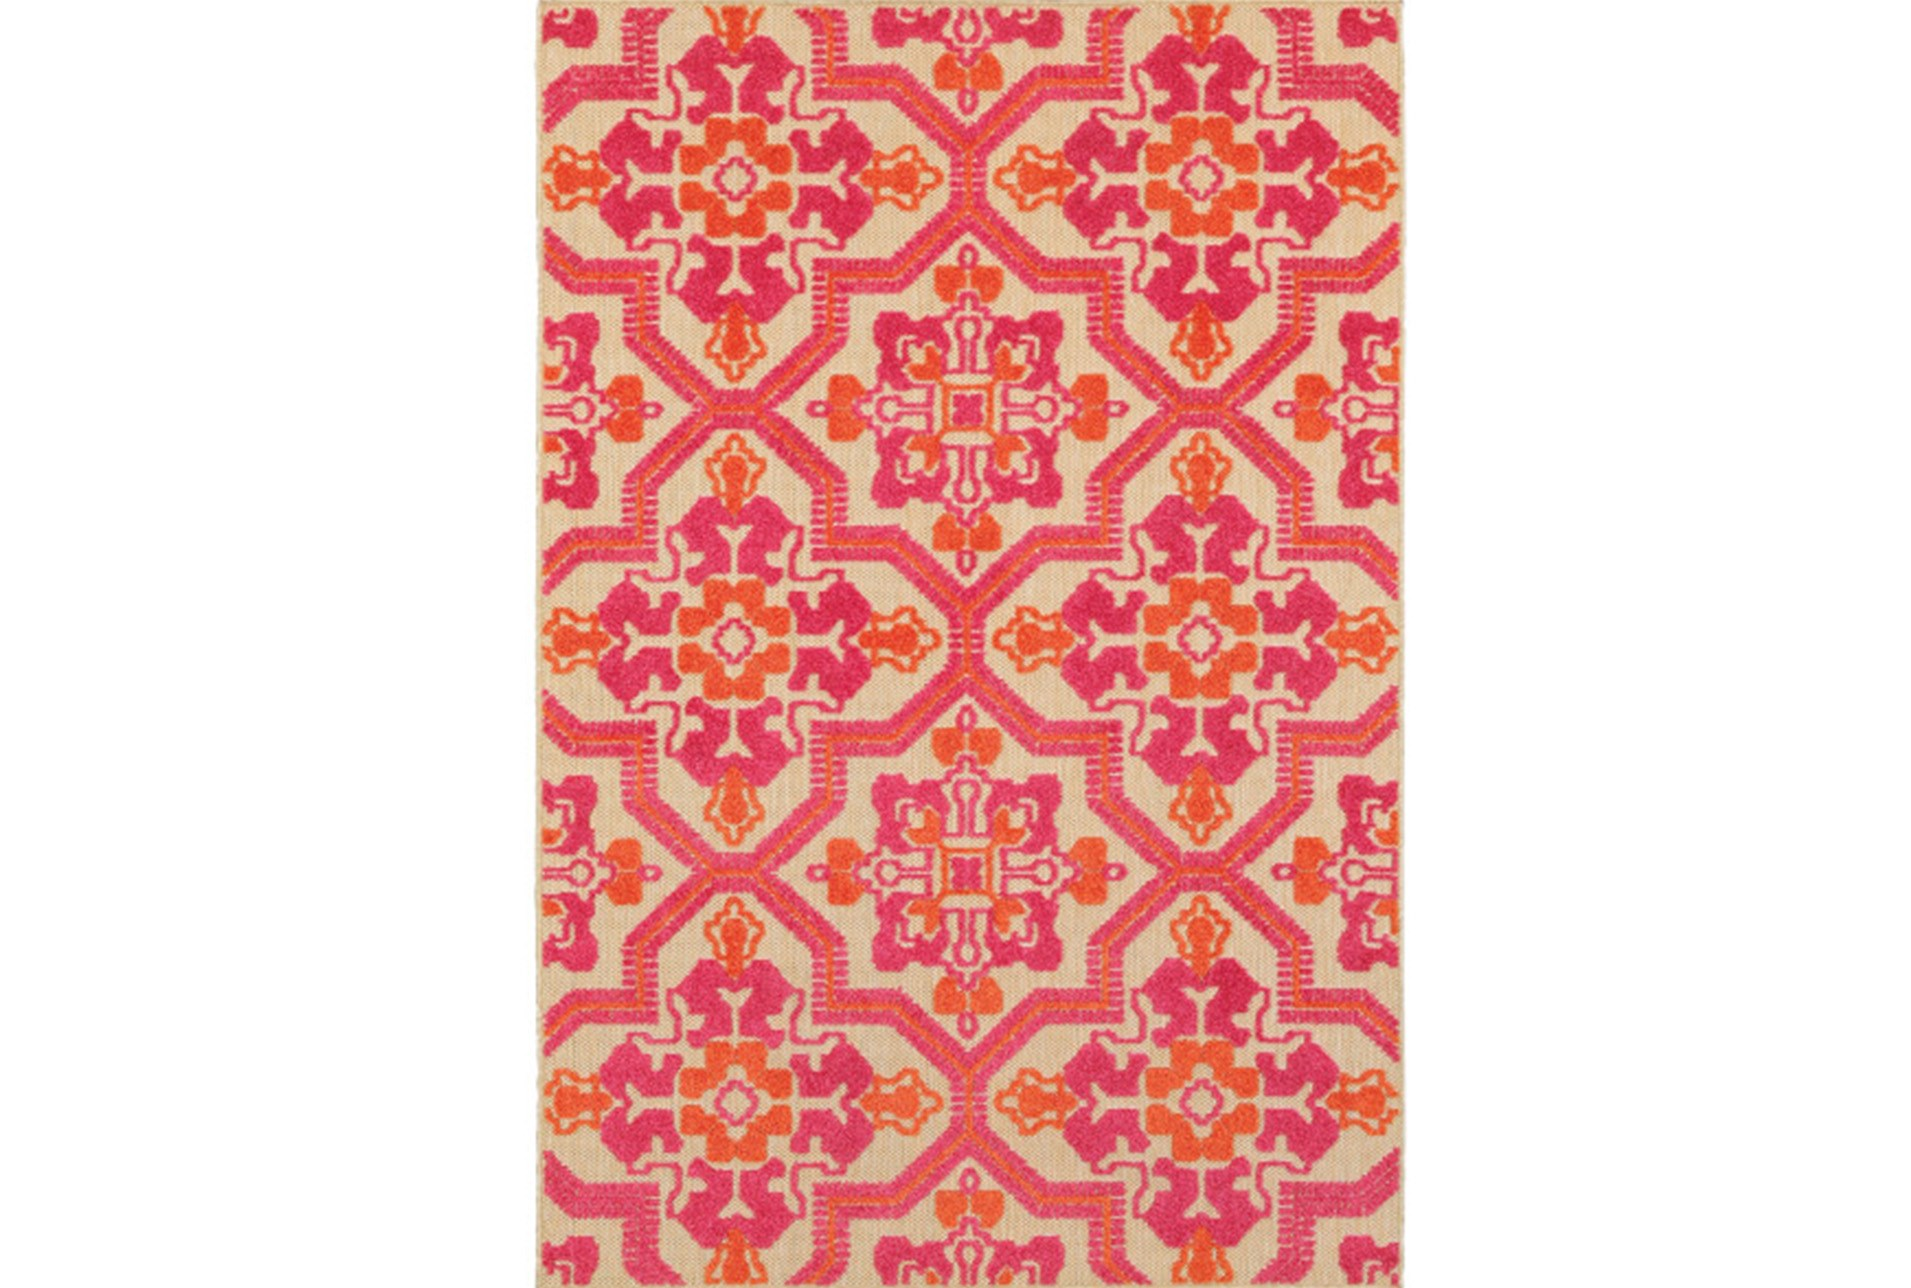 22x39 Outdoor Rug Fuschia And Mandarin Aztec Qty 1 Has Been Successfully Added To Your Cart